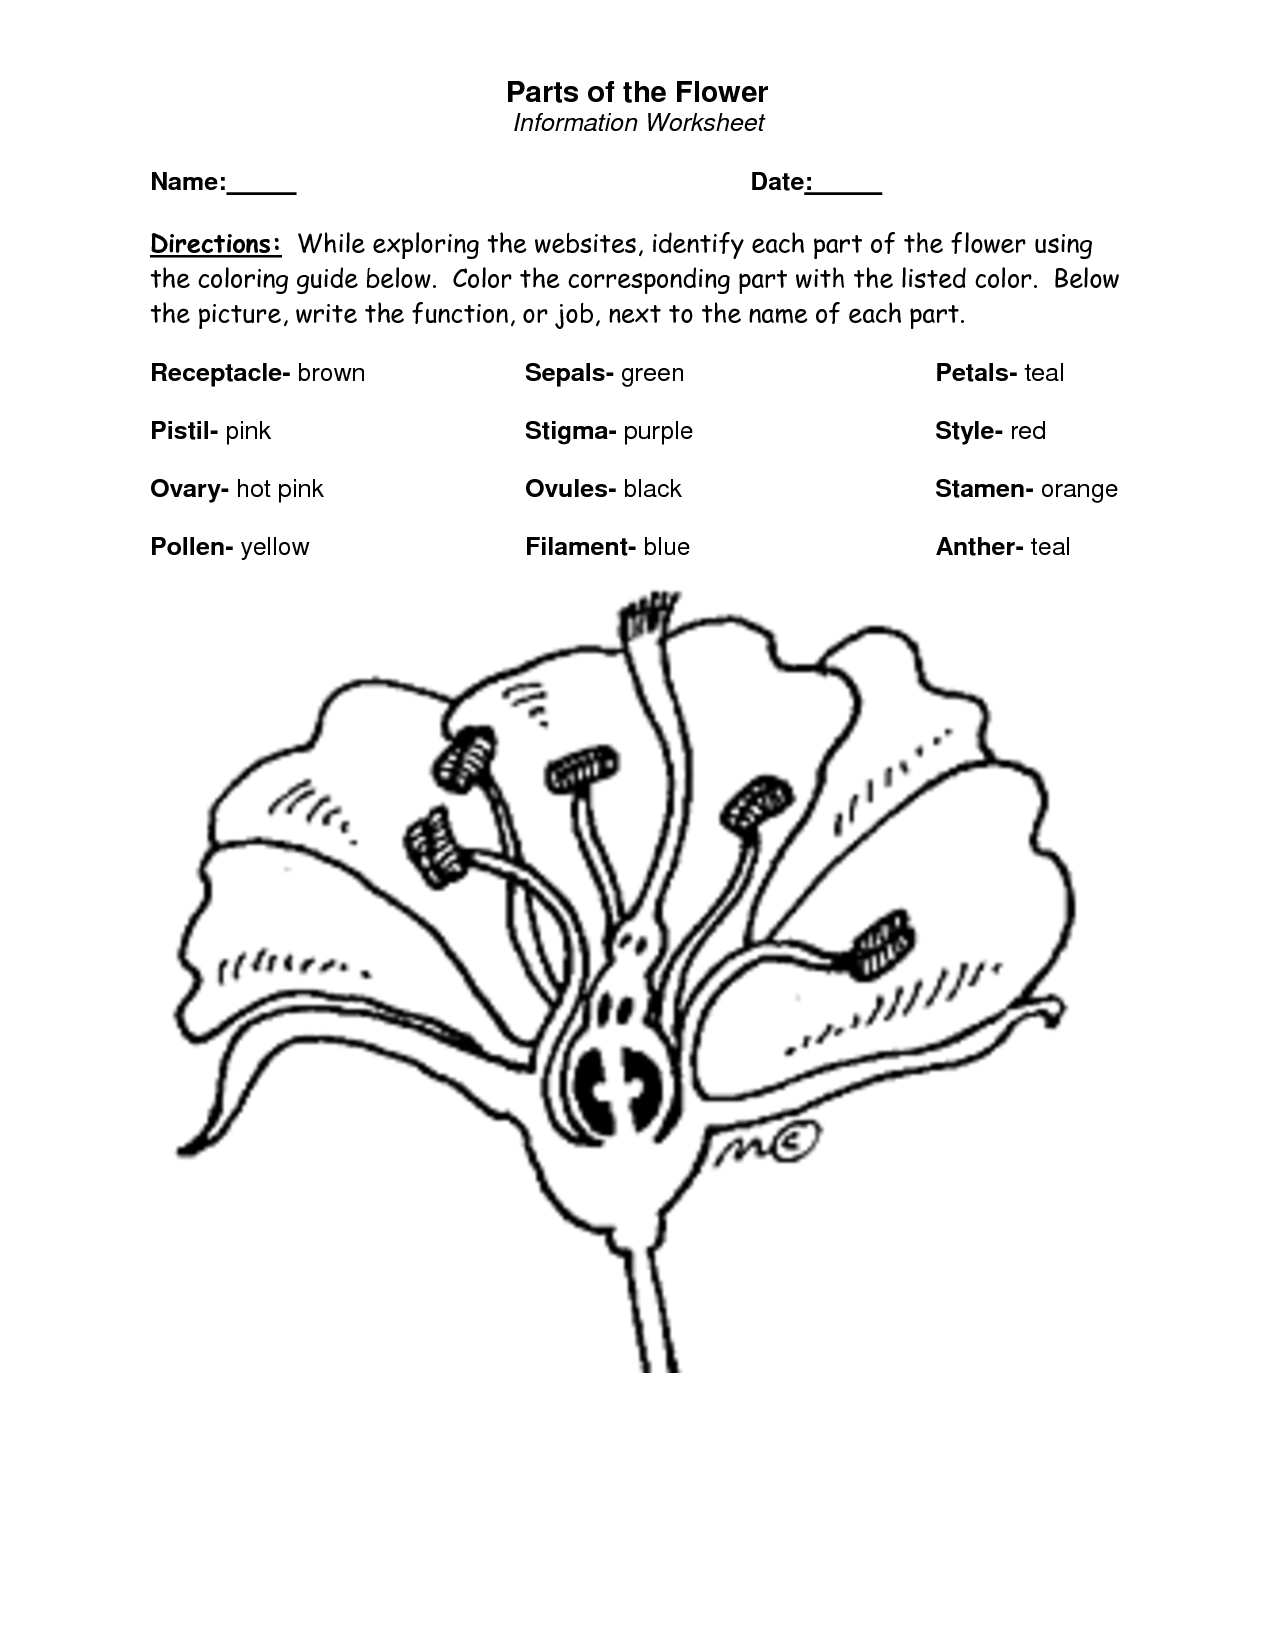 Parts Of A Flower Coloring Page 2